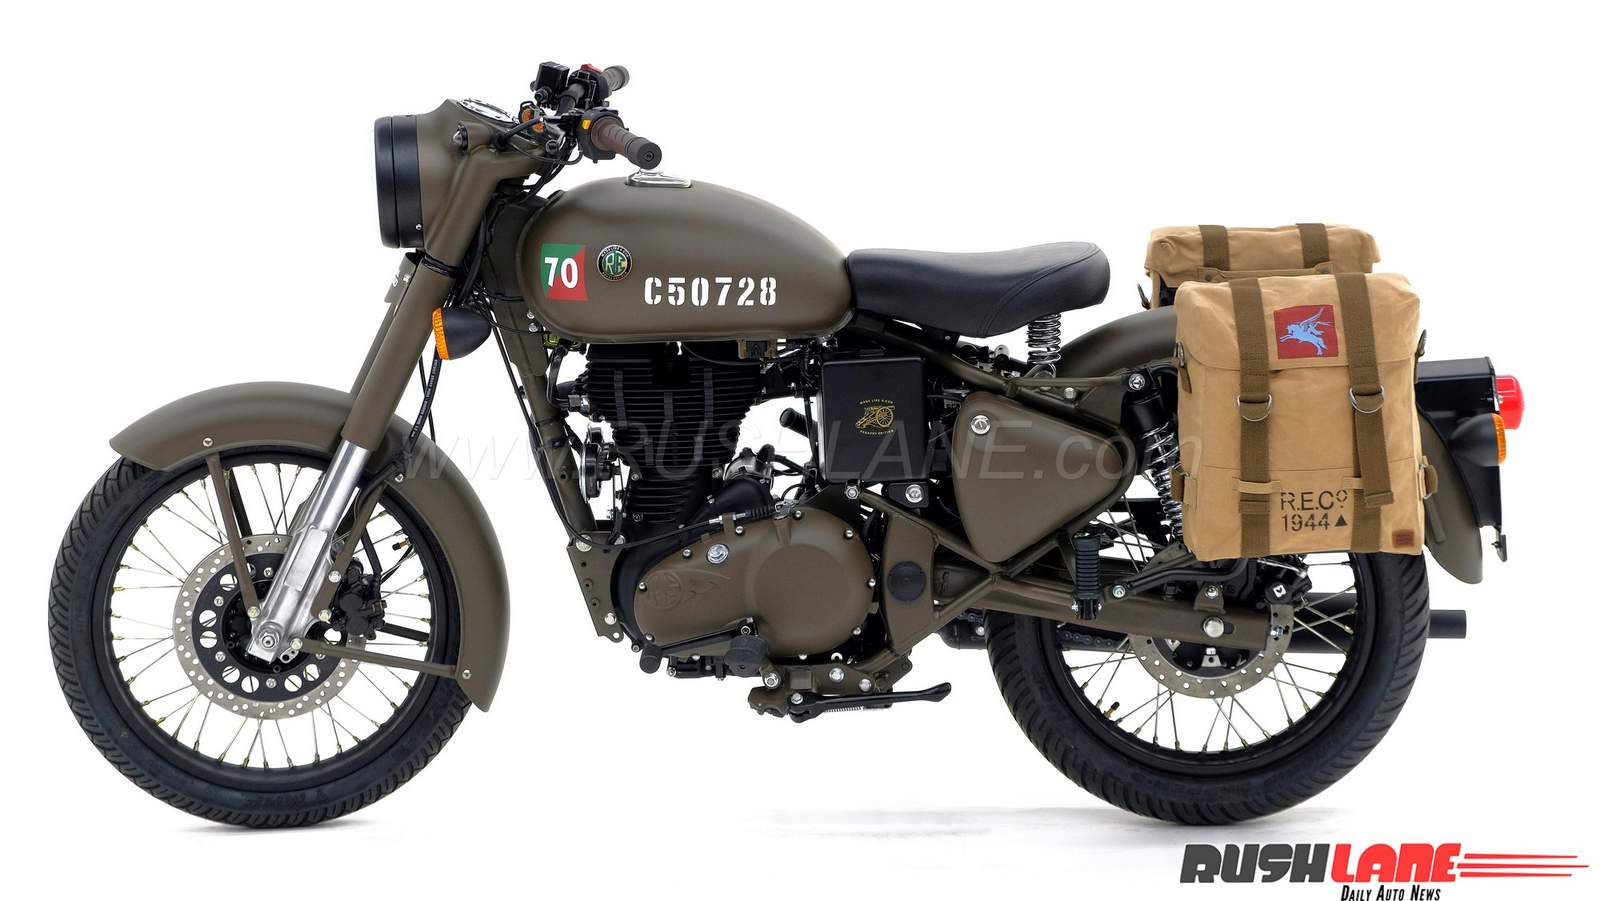 Royal Enfield Classic 500 Pegasus launched at Indian dealers - Price Rs 2.4 lakhs